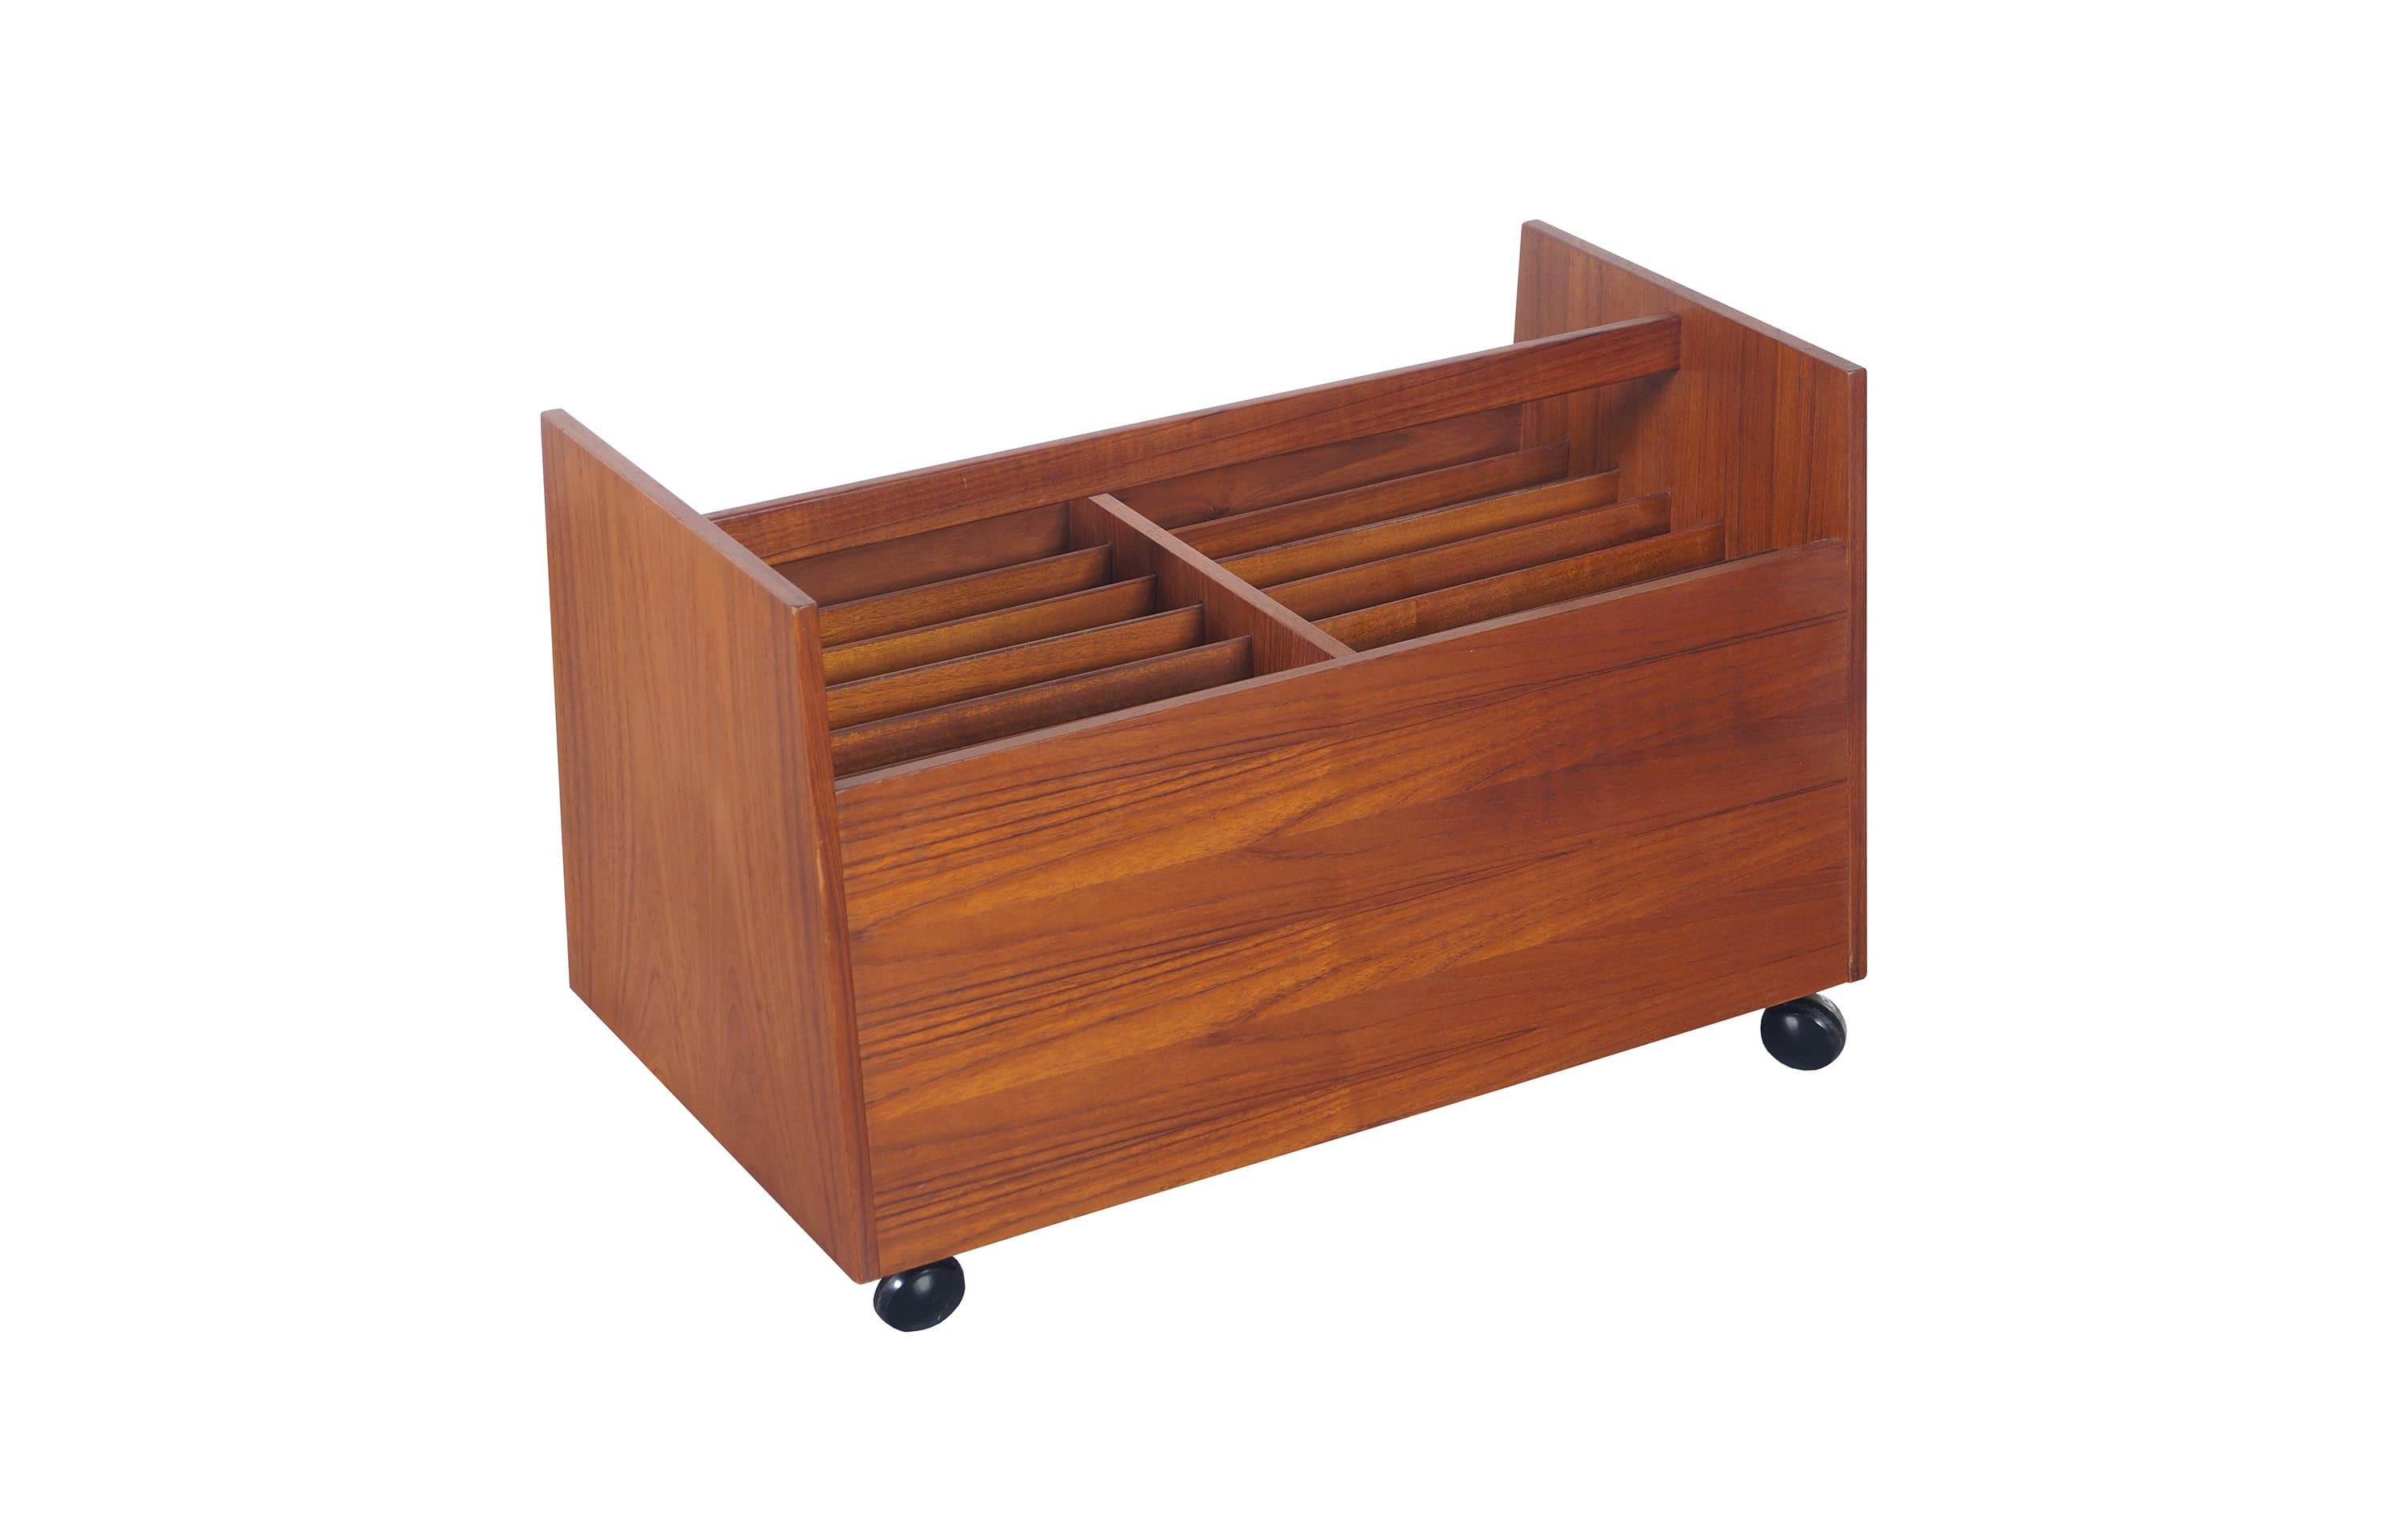 Danish Teak Rolling Magazine Stand by Rolf Hesland